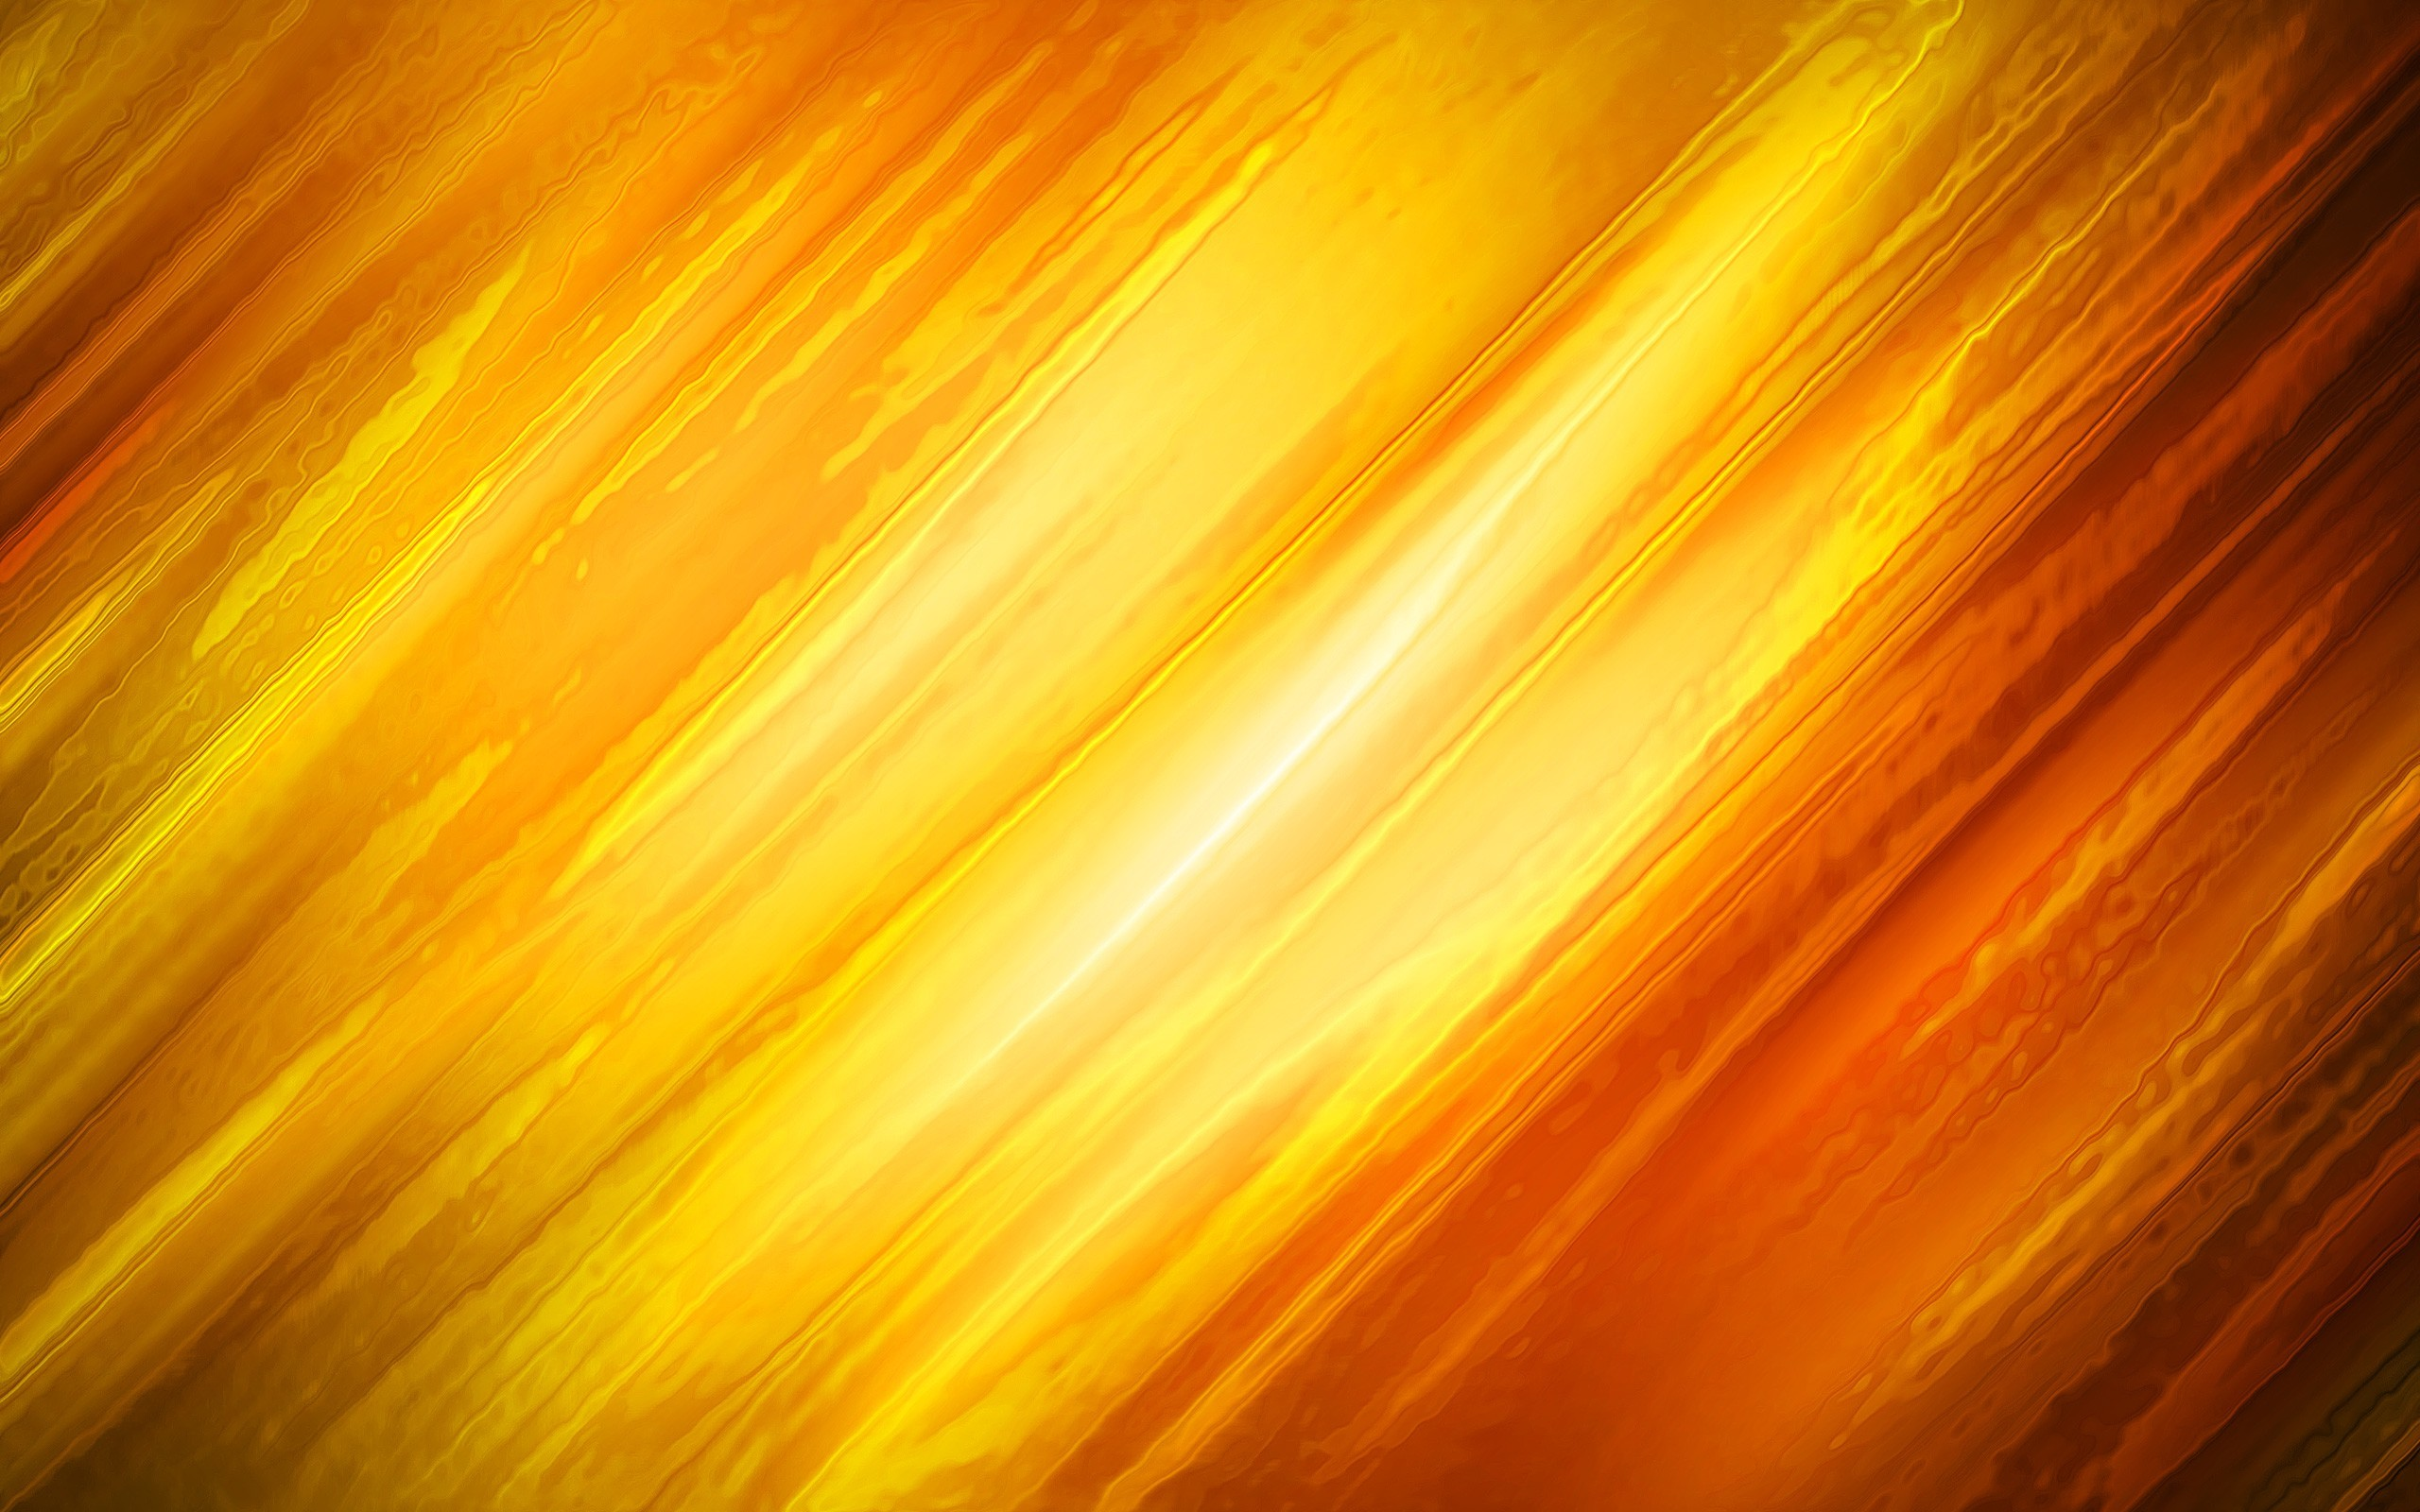 yellow orange yellow background HD Wallpaper